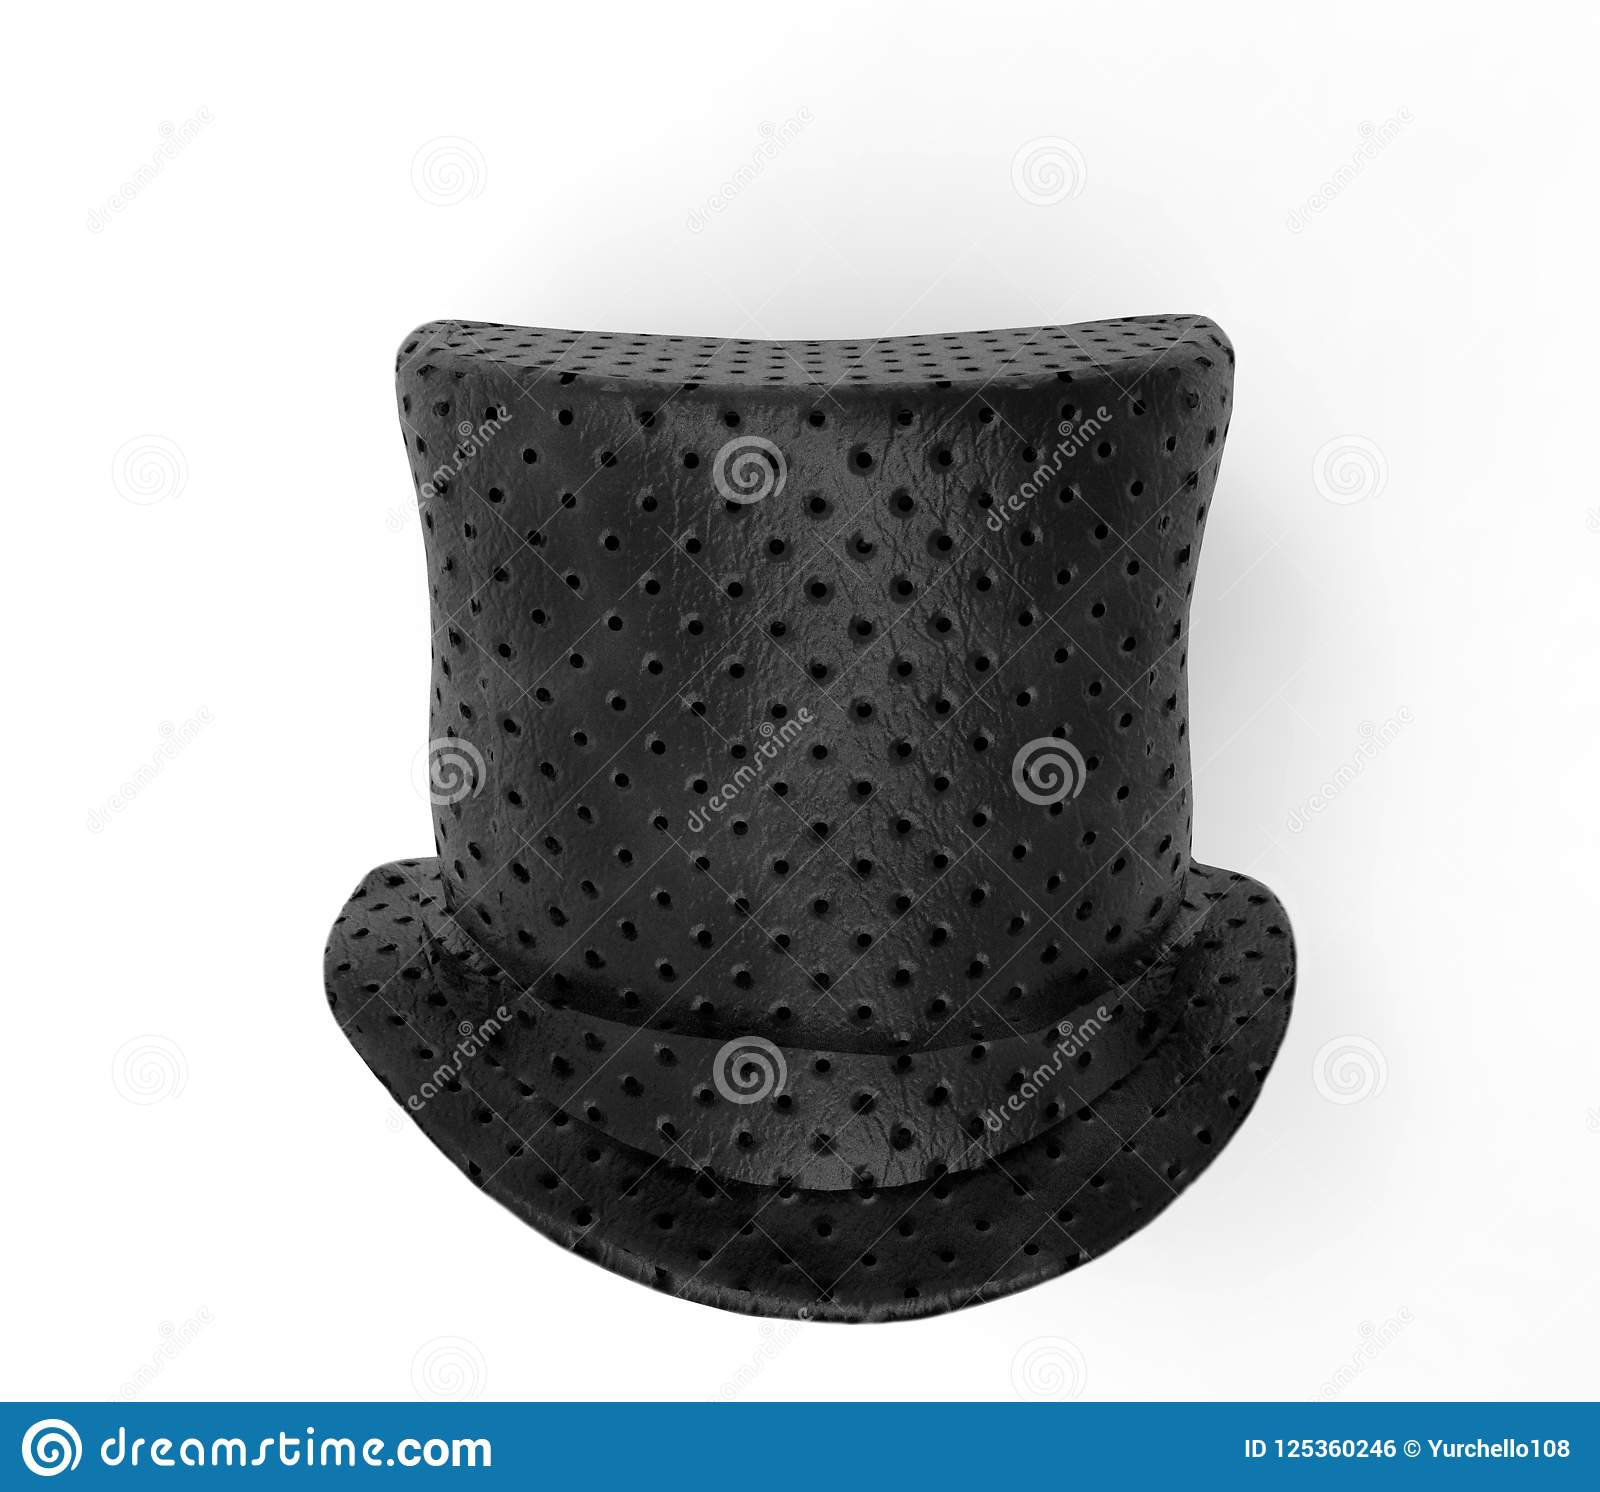 818a16f46 Black Top Hat, 3D Rendering Stock Illustration - Illustration of ...